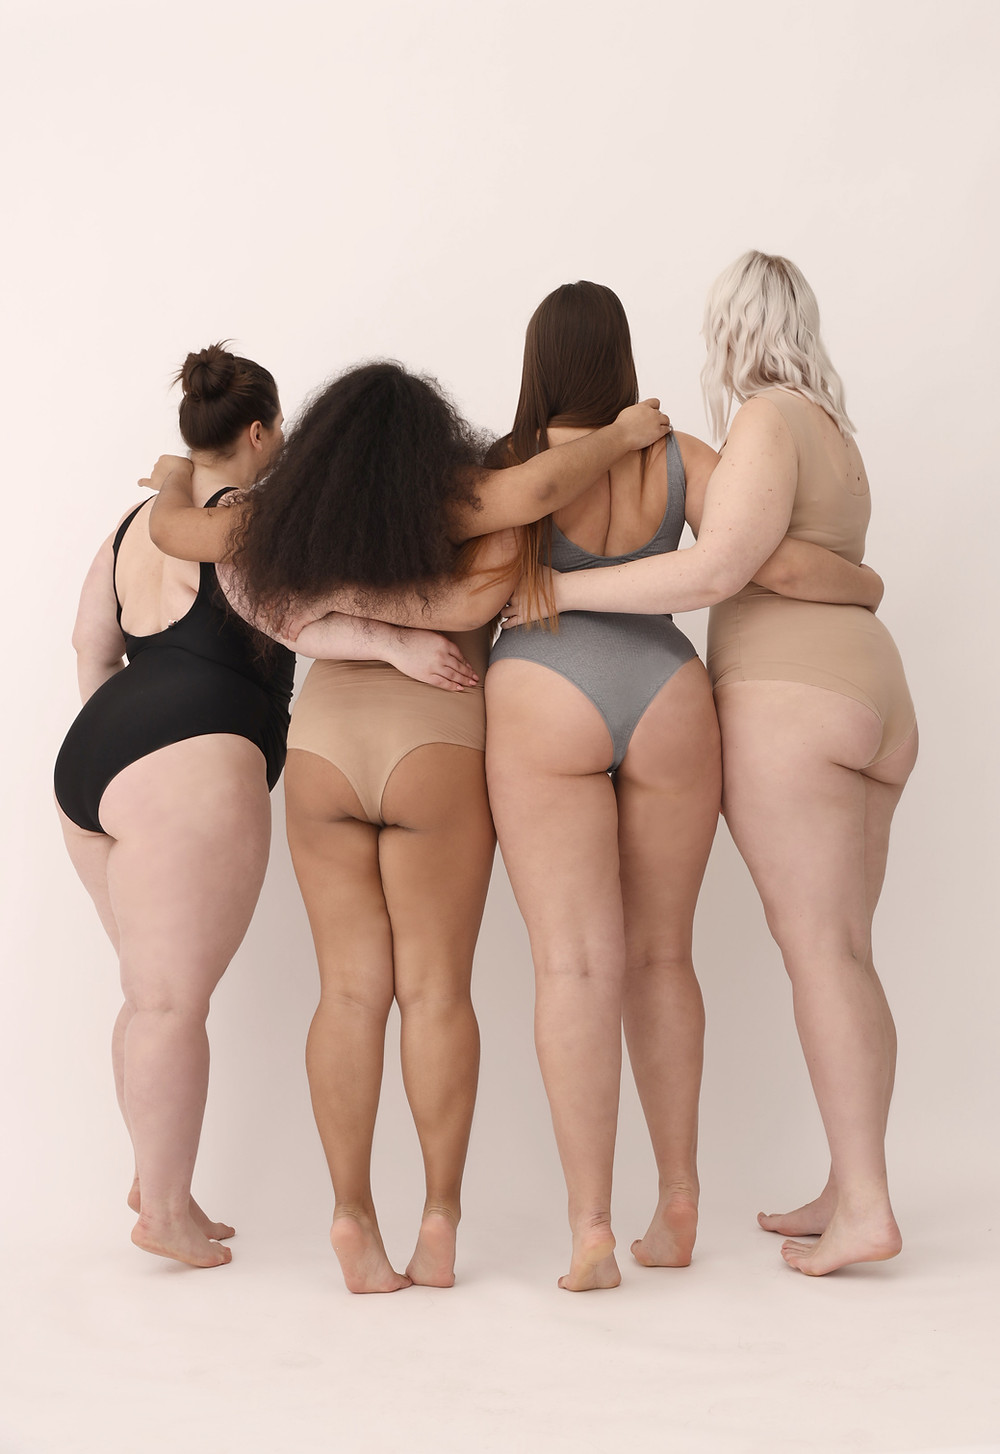 Women of different shapes, Dont let the scales define you, The Image Tree Blog